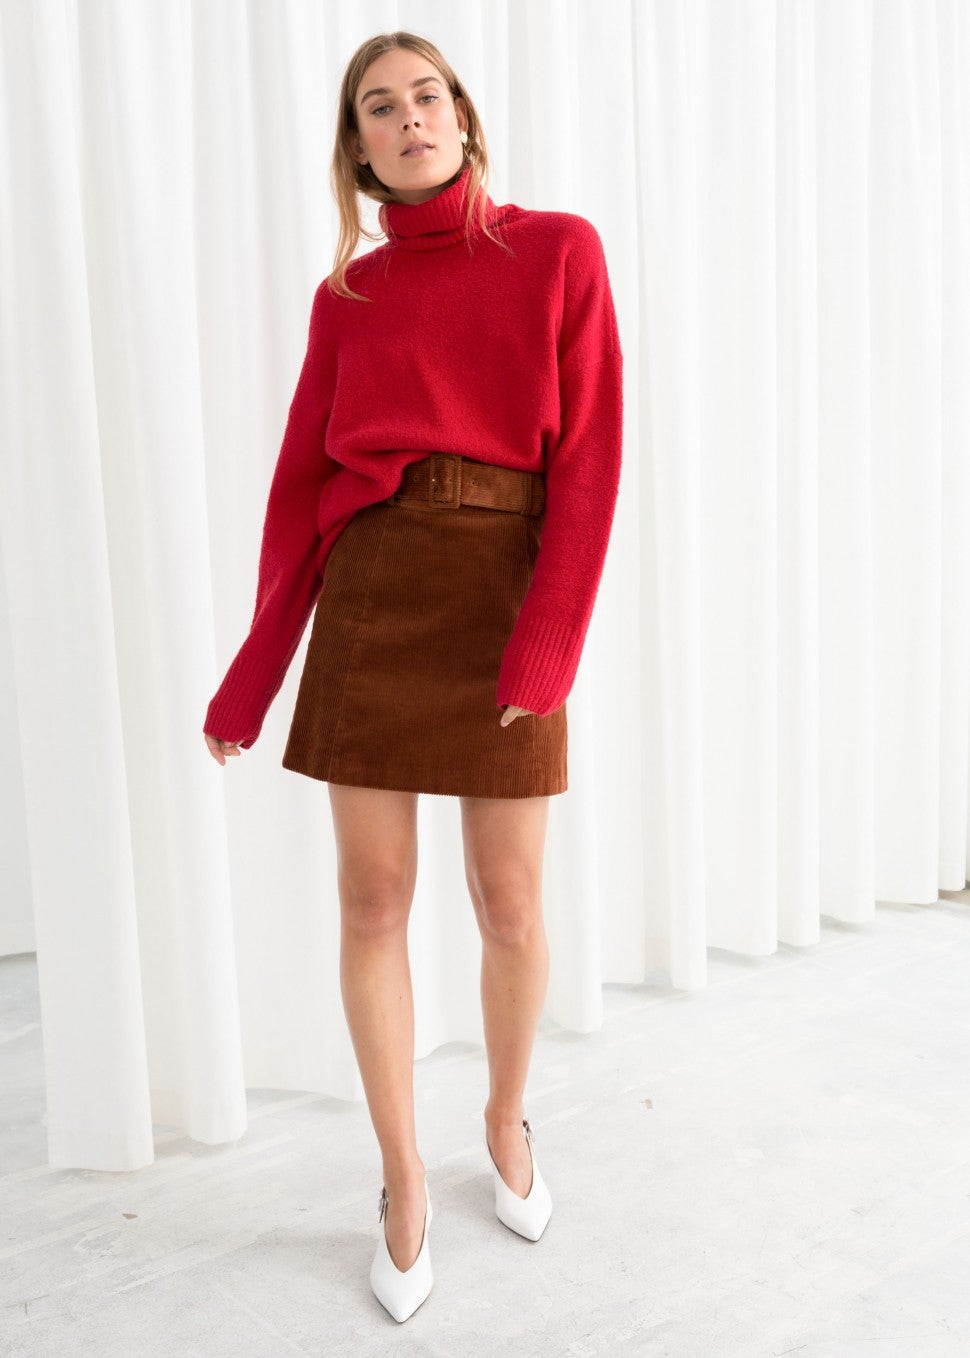 & Other Stories red turtleneck sweater